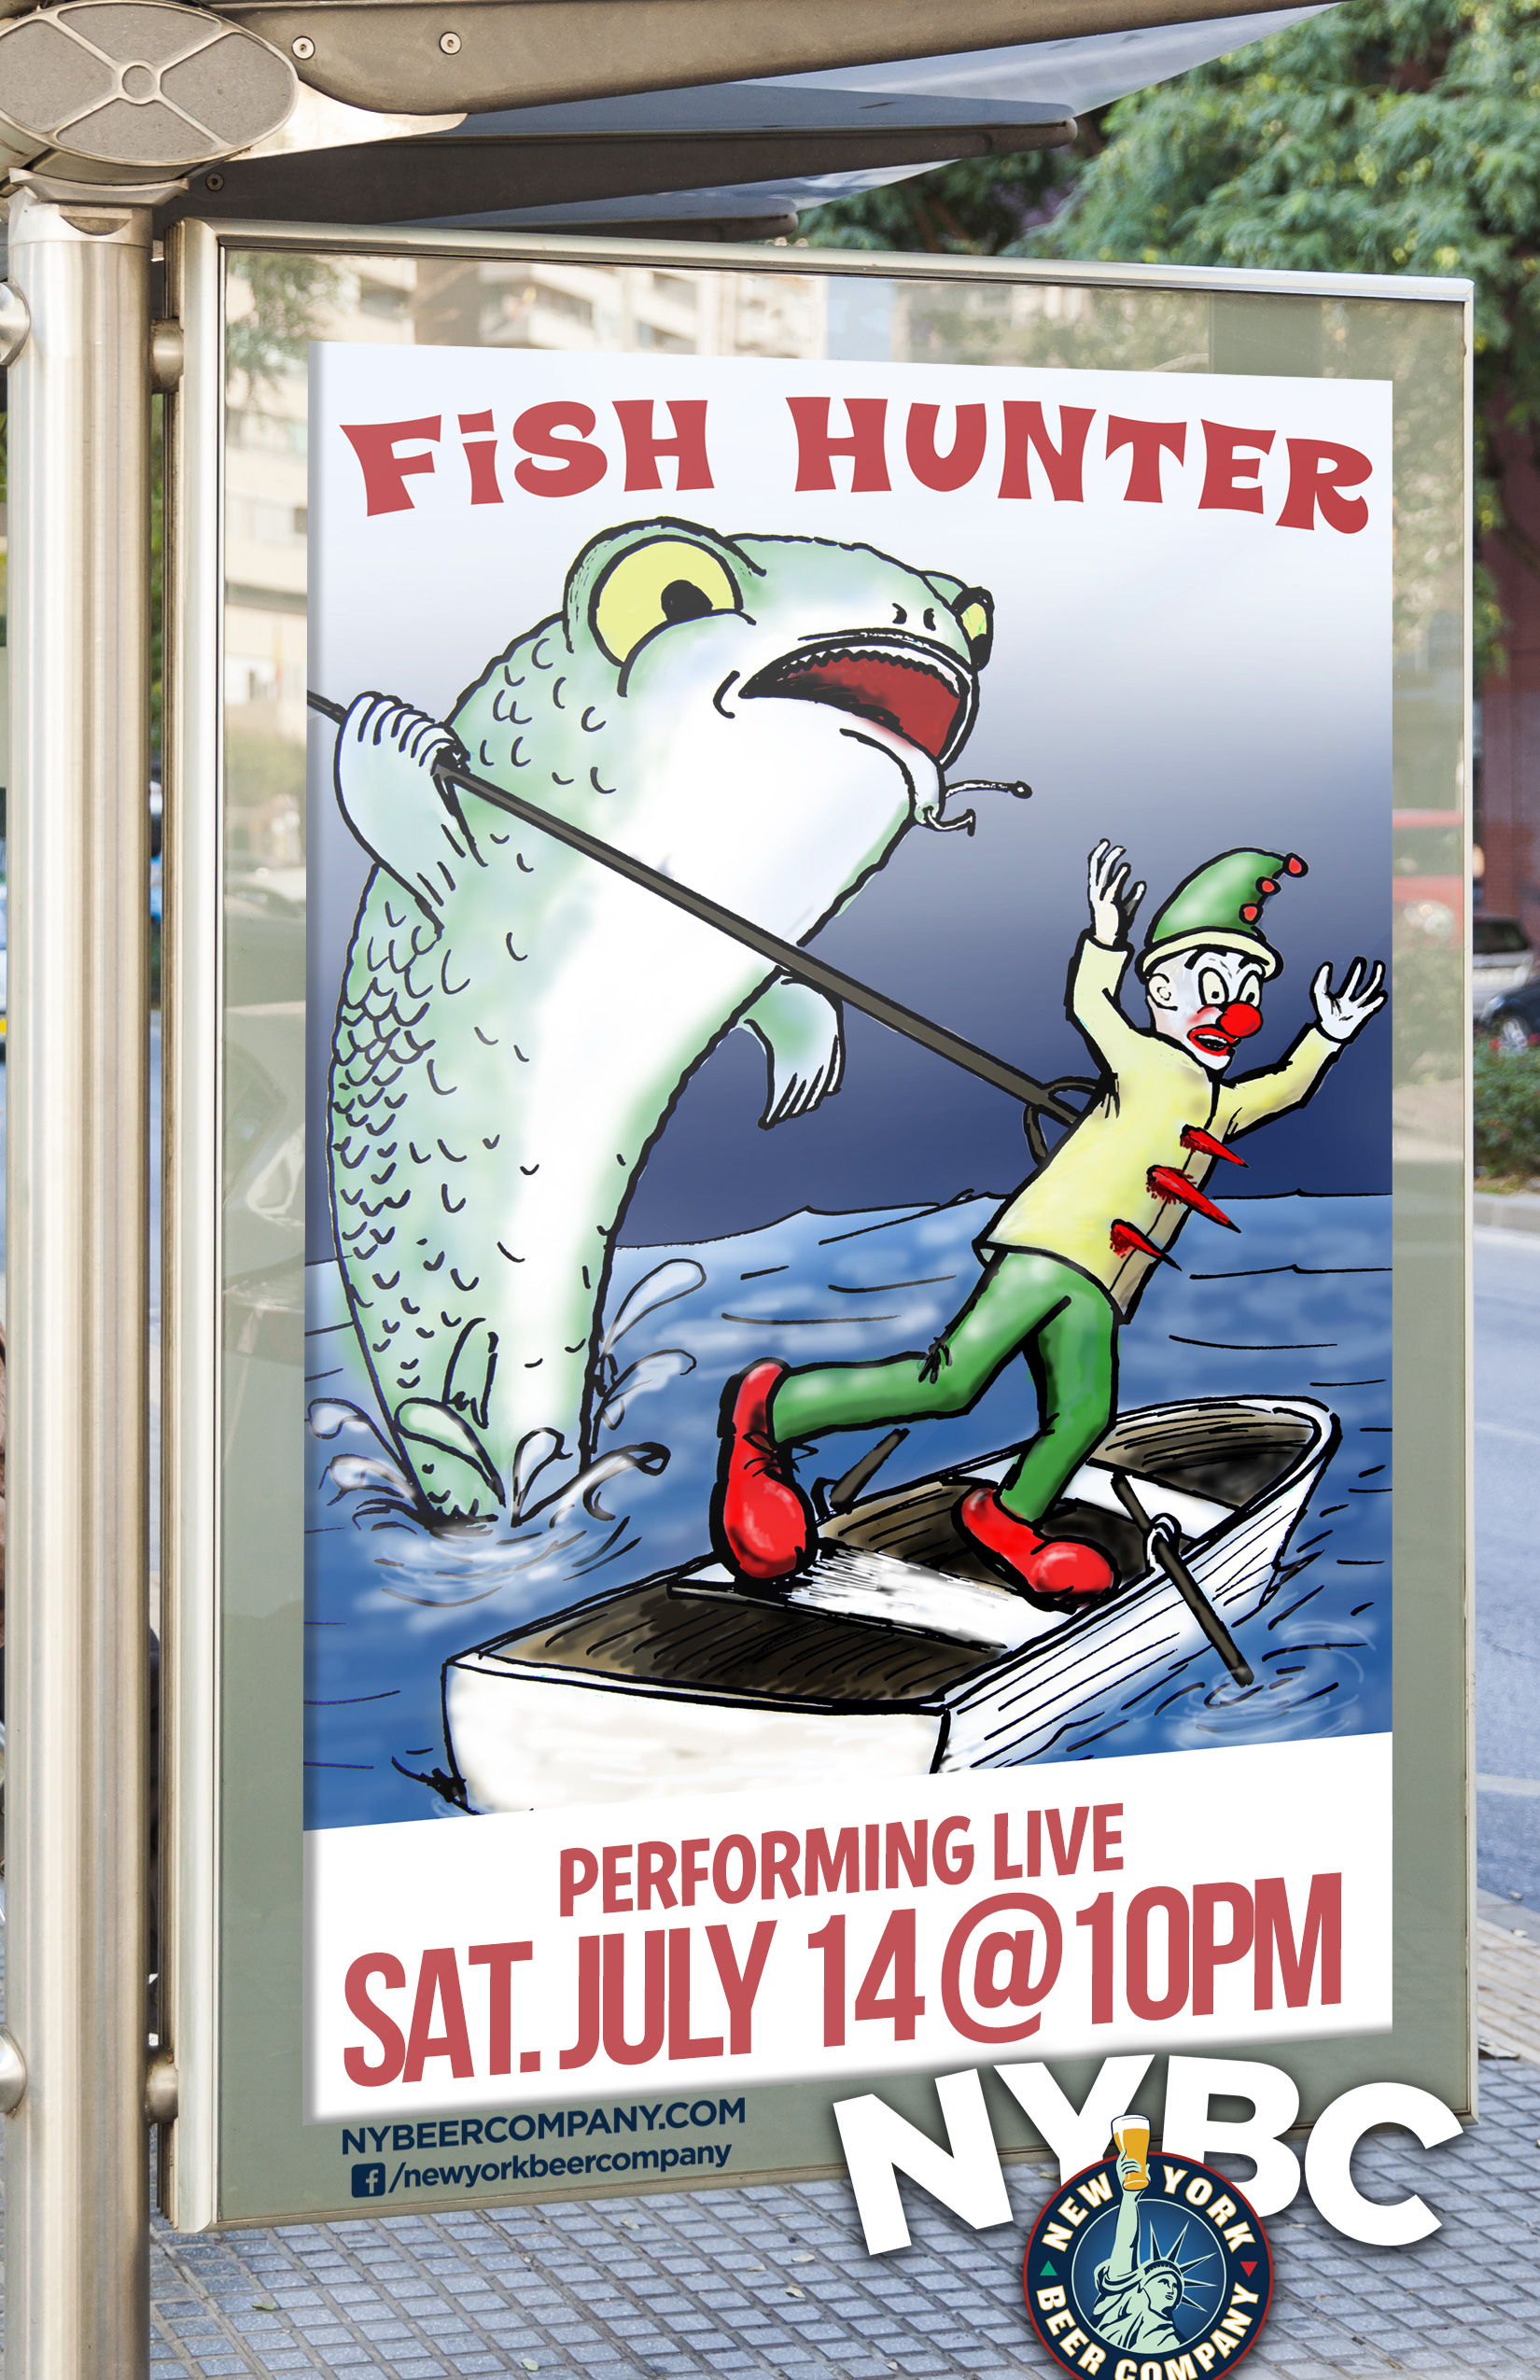 Fish Hunter band - Live MUSIC NYC